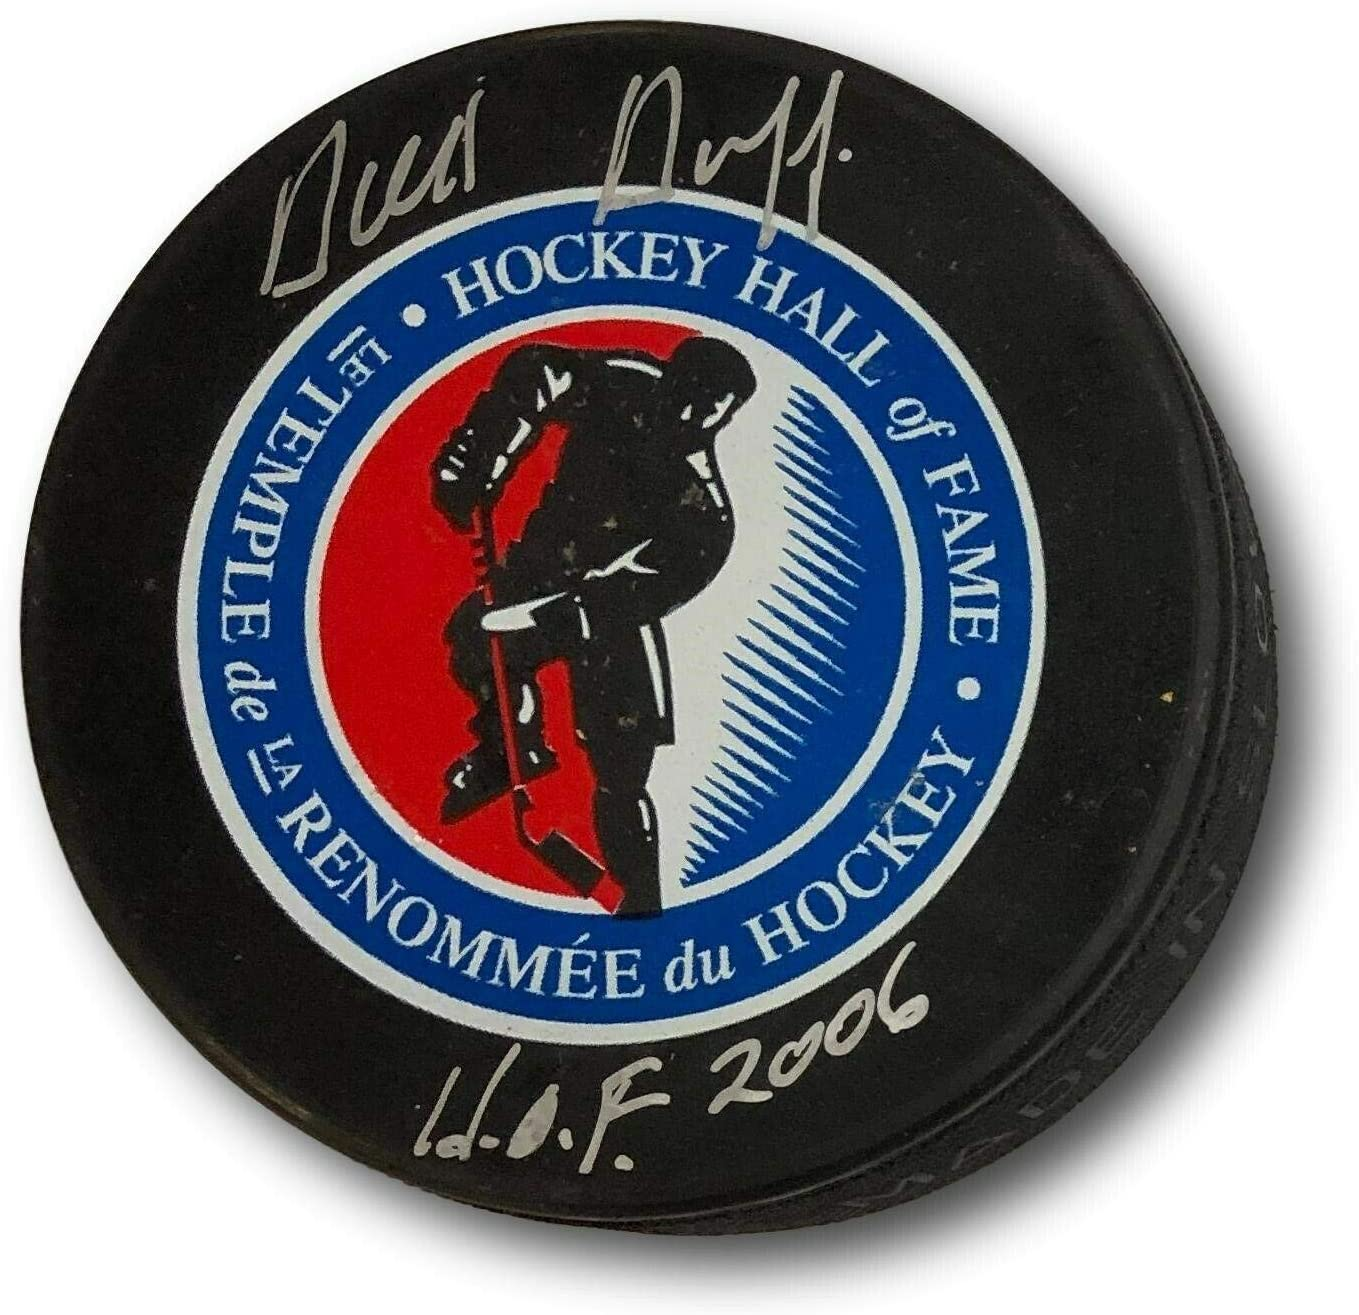 Dick Duff Signed Hockey Puck Autographed HOF Canadiens AG51051 b34 - PSA/DNA Certified - Autographed NHL Pucks